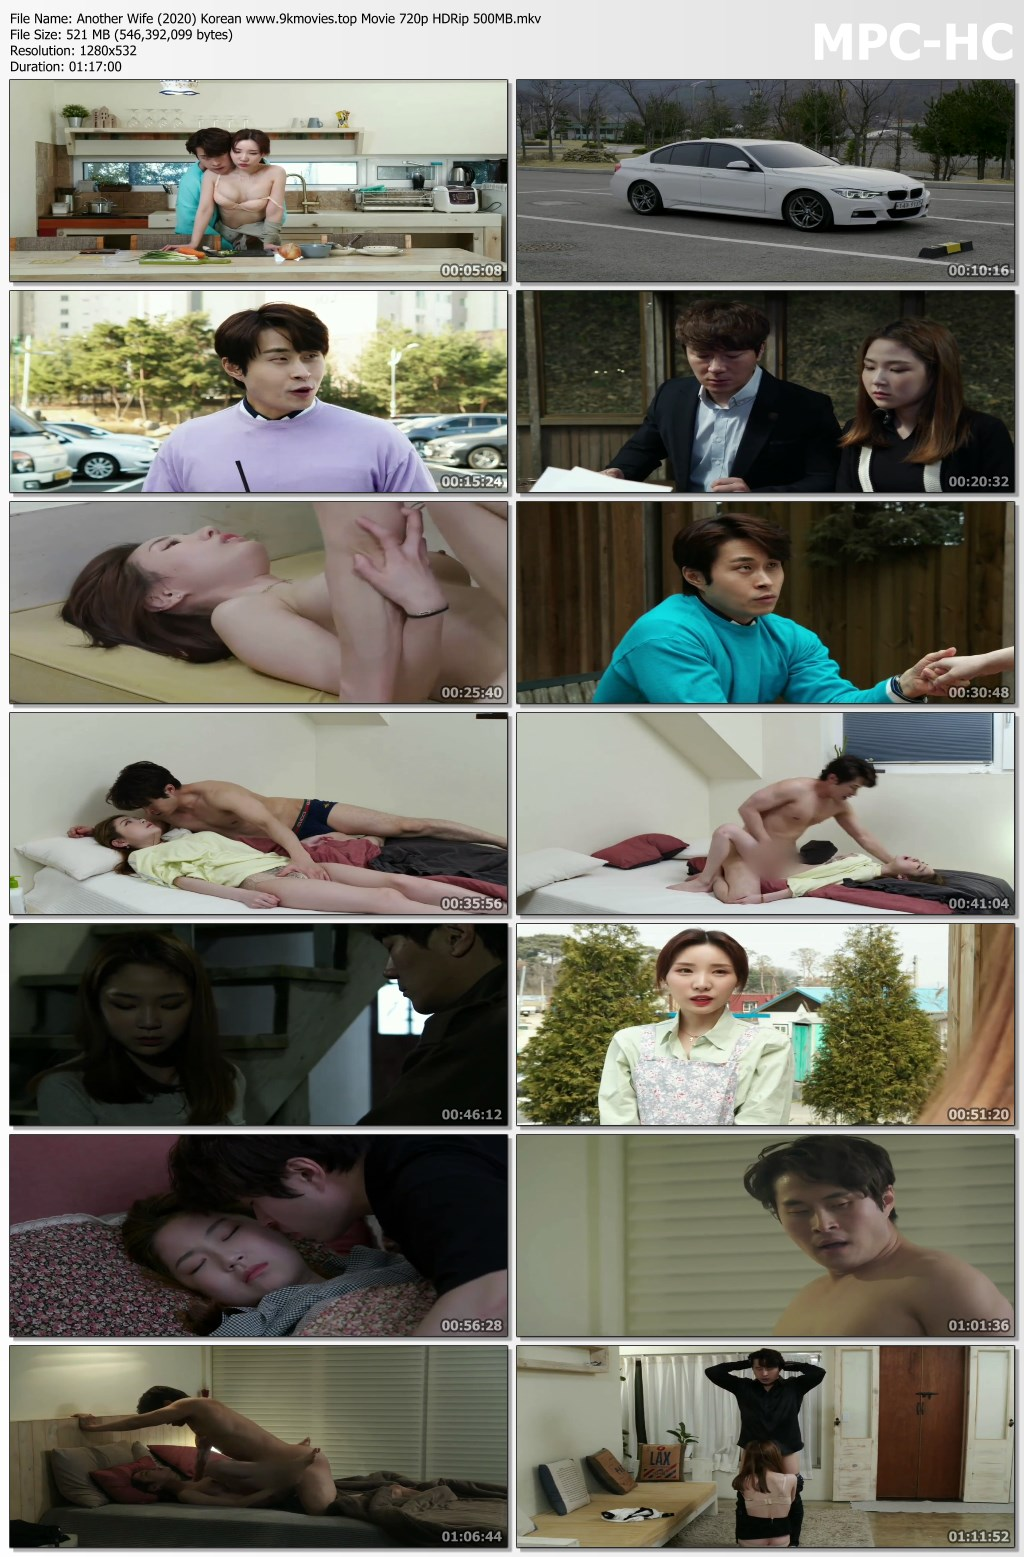 Another Wife (2020) Korean www.9kmovies.top Movie 720p HDRip 500MB.mkv thumbs